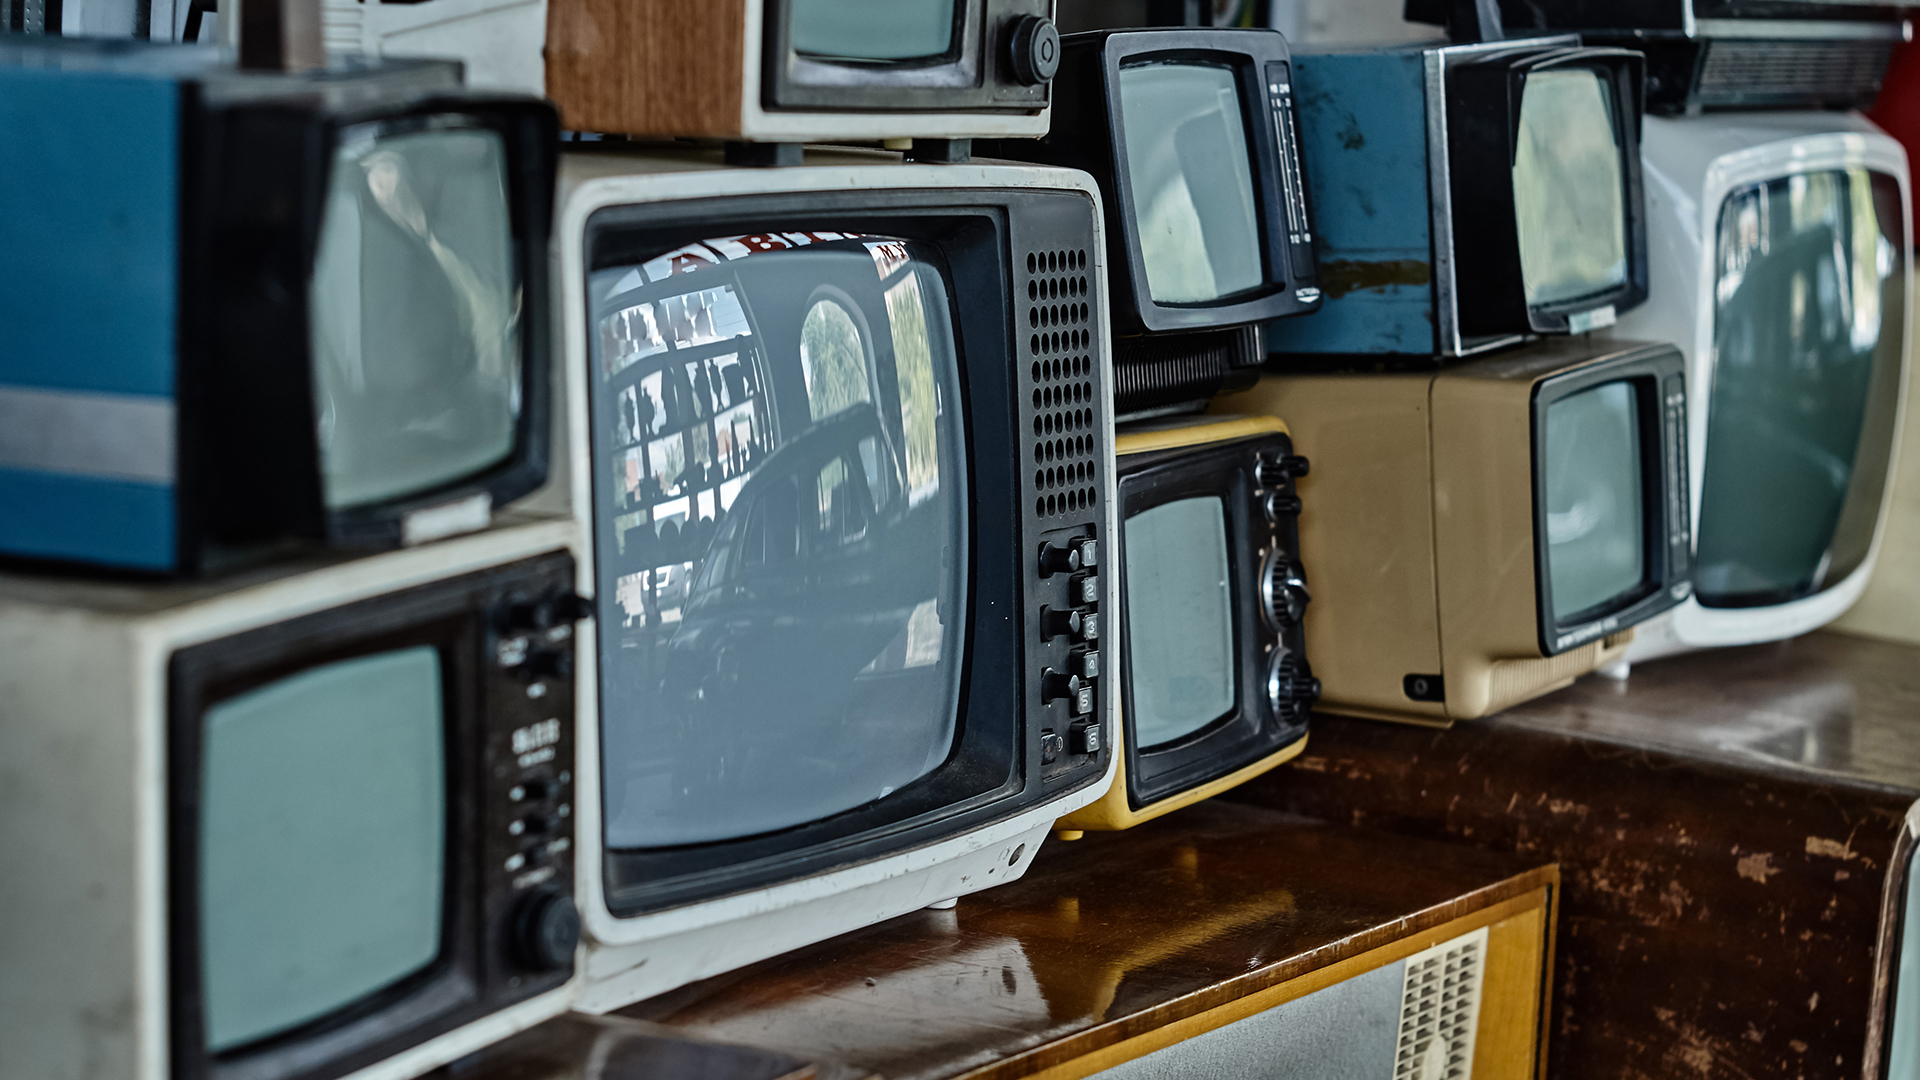 Key components of the television (invented by a 15-year-old)